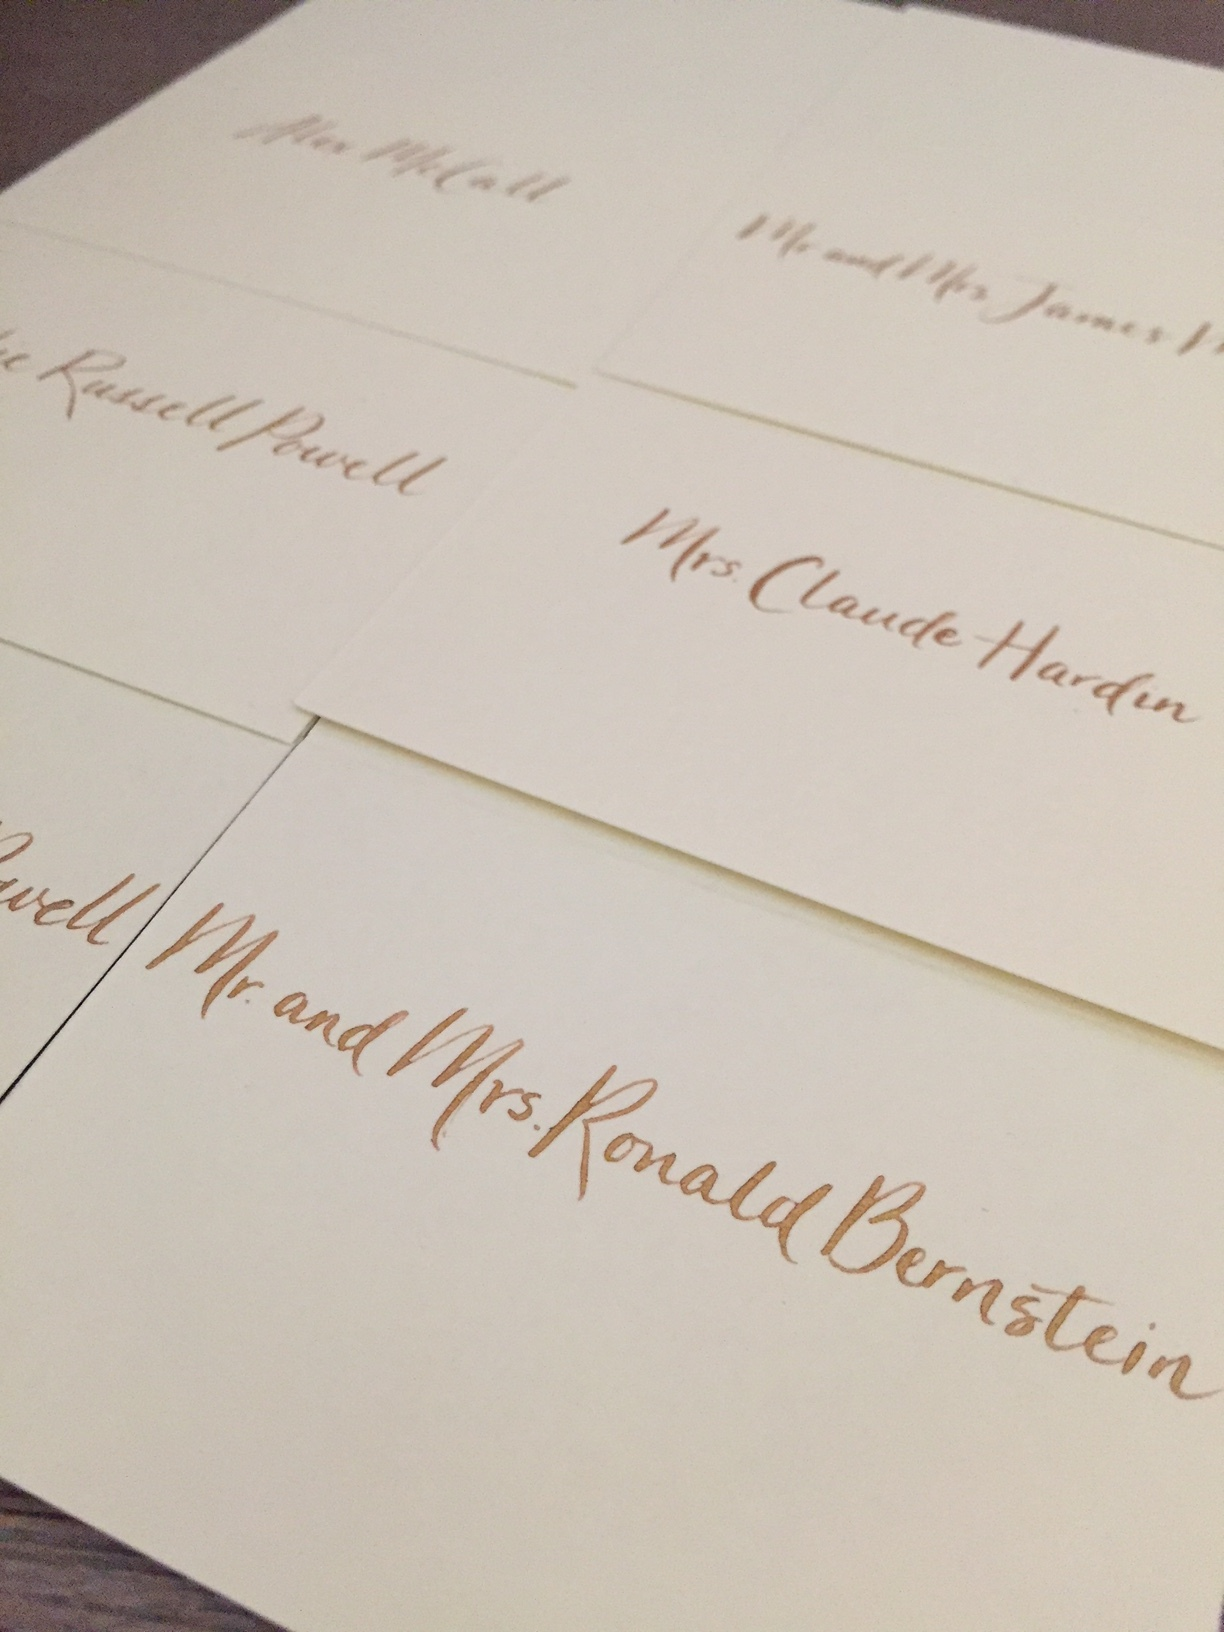 A modern style lettering to match the invitations for a corporate event